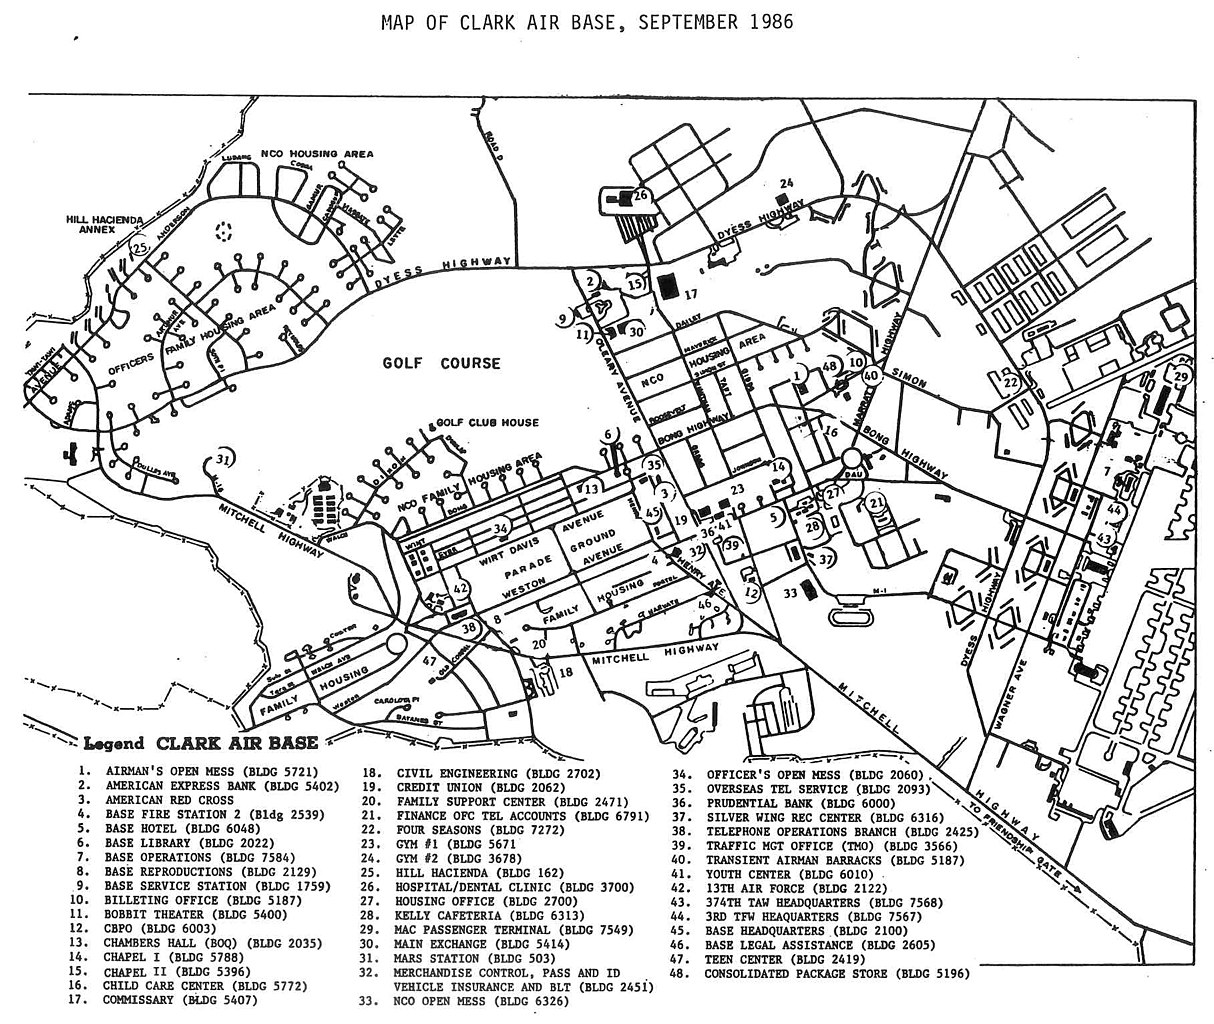 hight resolution of file map of clark air force base philippines september 1986 jpg